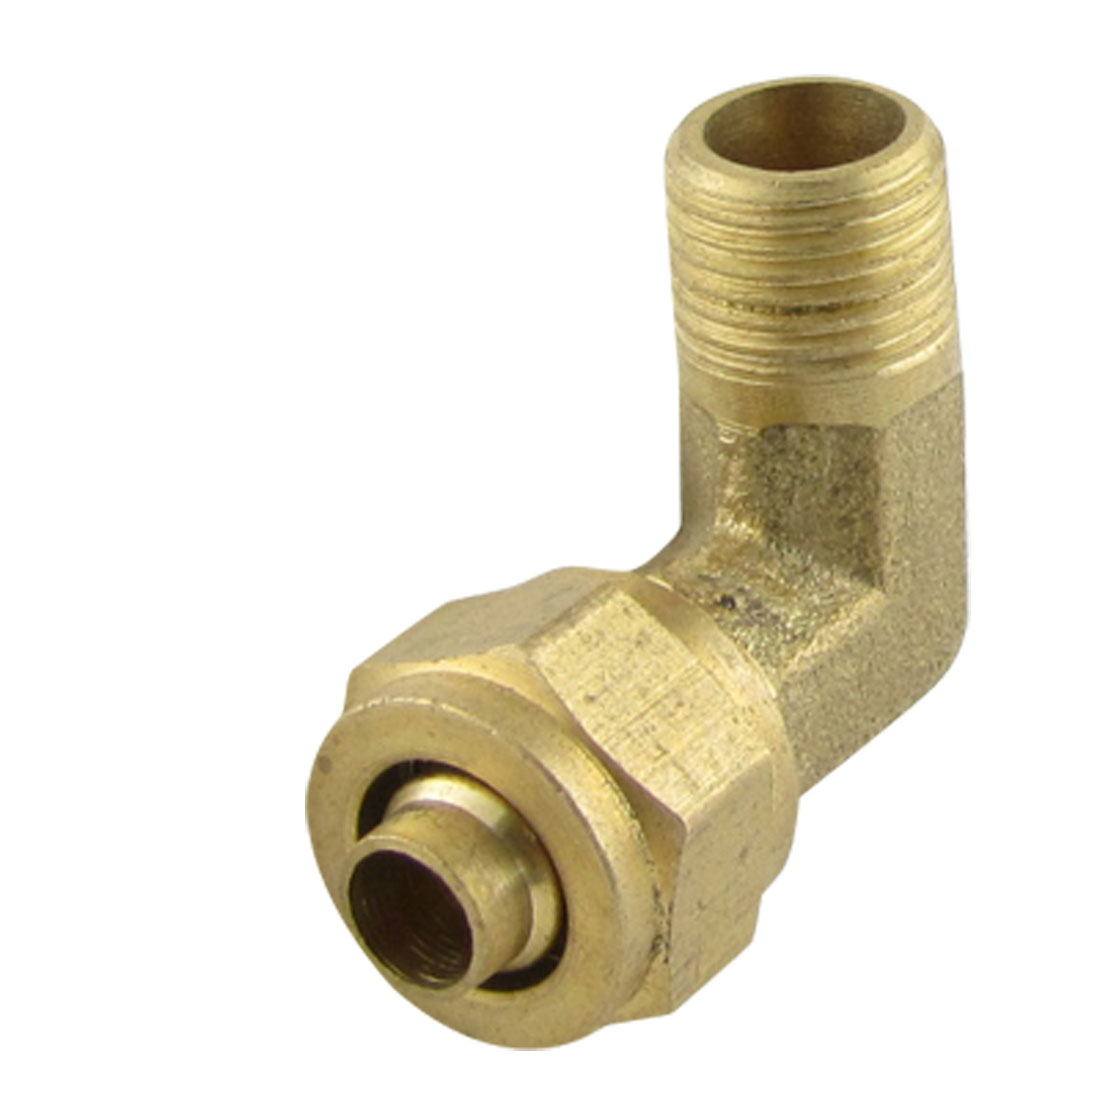 Brass 6 x 8mm Pneumatic Pipe Fitting Quick Coupler Elbow Connector